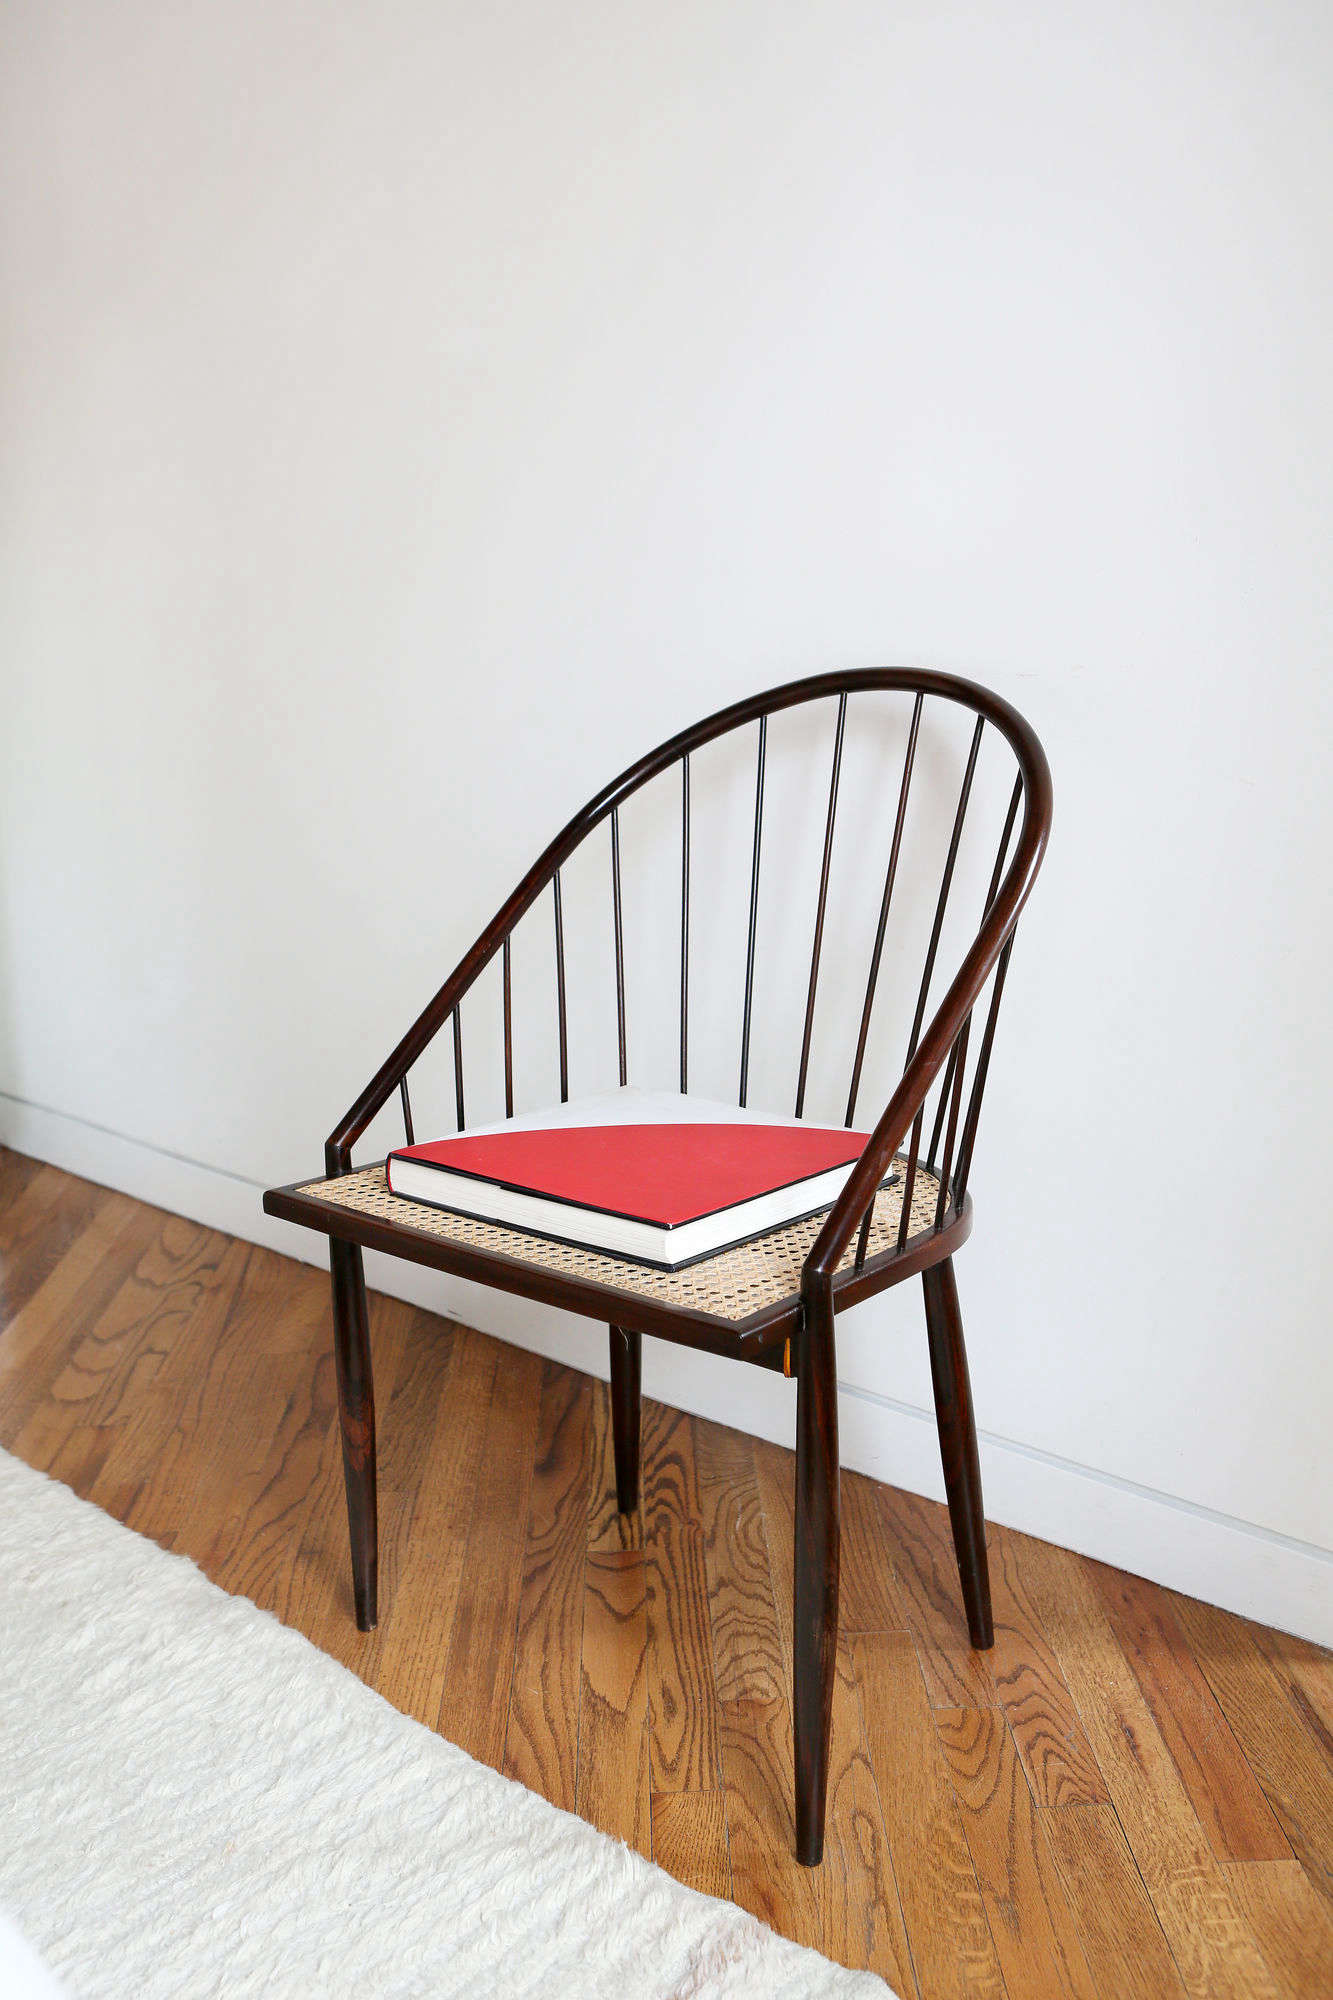 An idea to steal: chair as pared-down display.